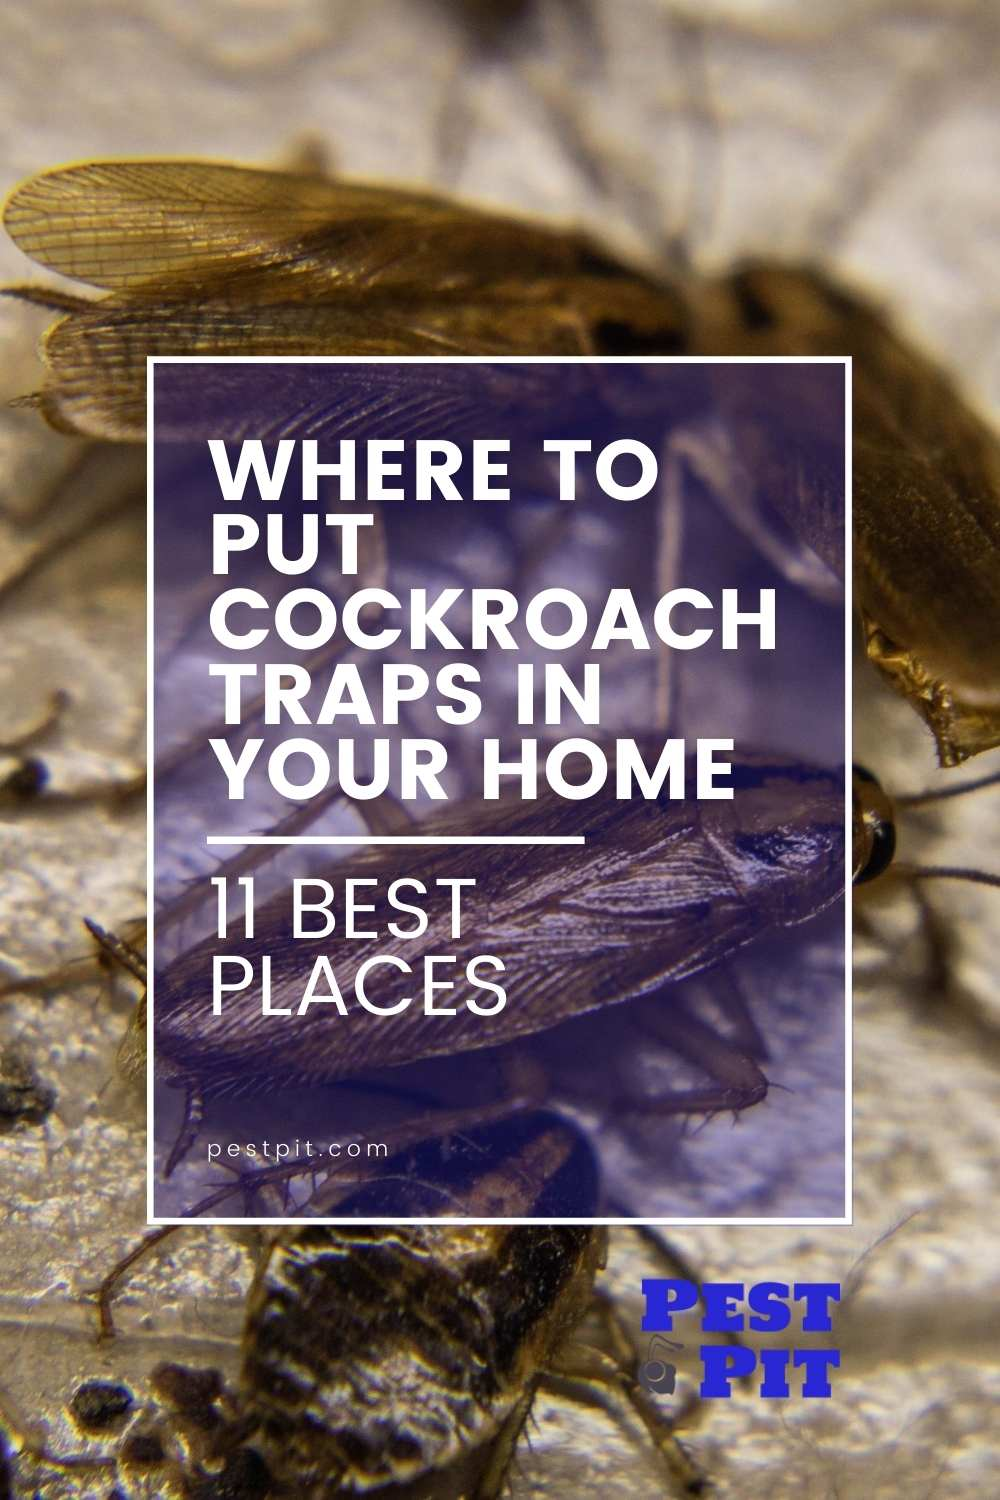 Where to Put Cockroach Traps in Your Home